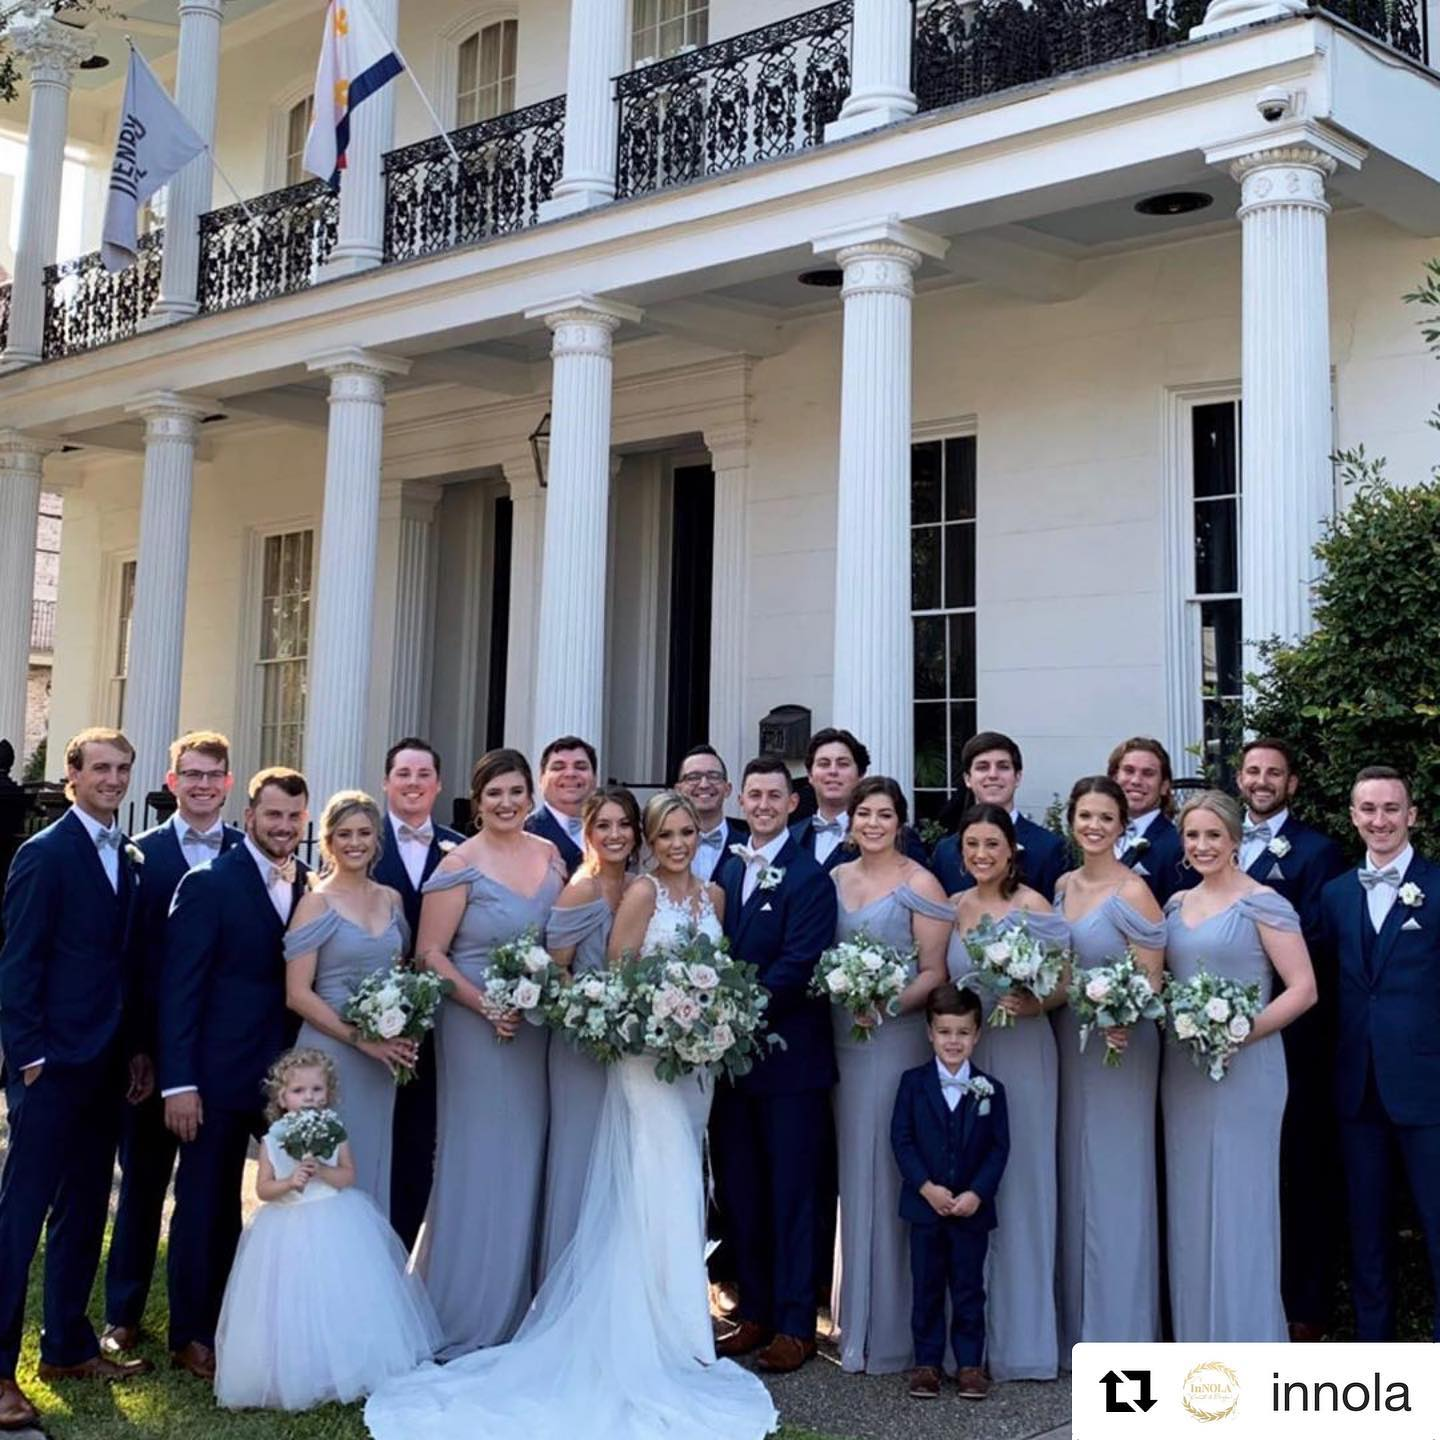 Wedding party wearing Tuxedos to Geaux